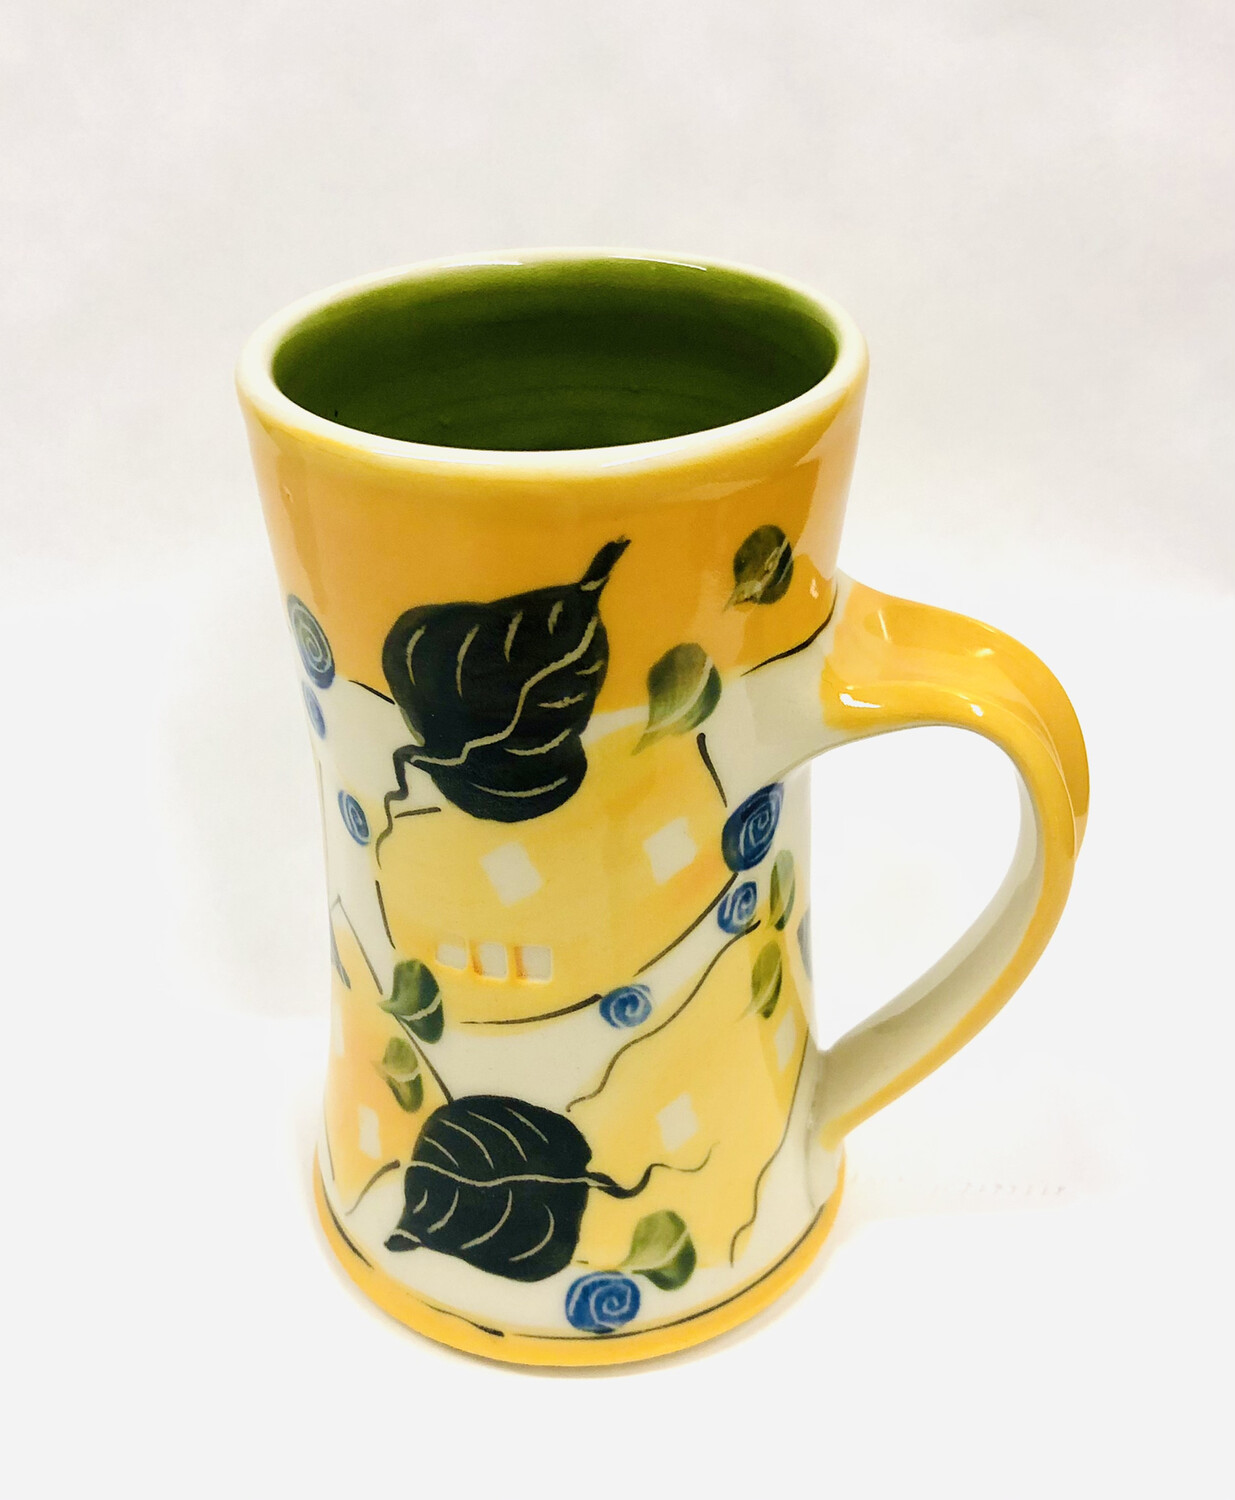 Orange Mug Green Inside - Keffer